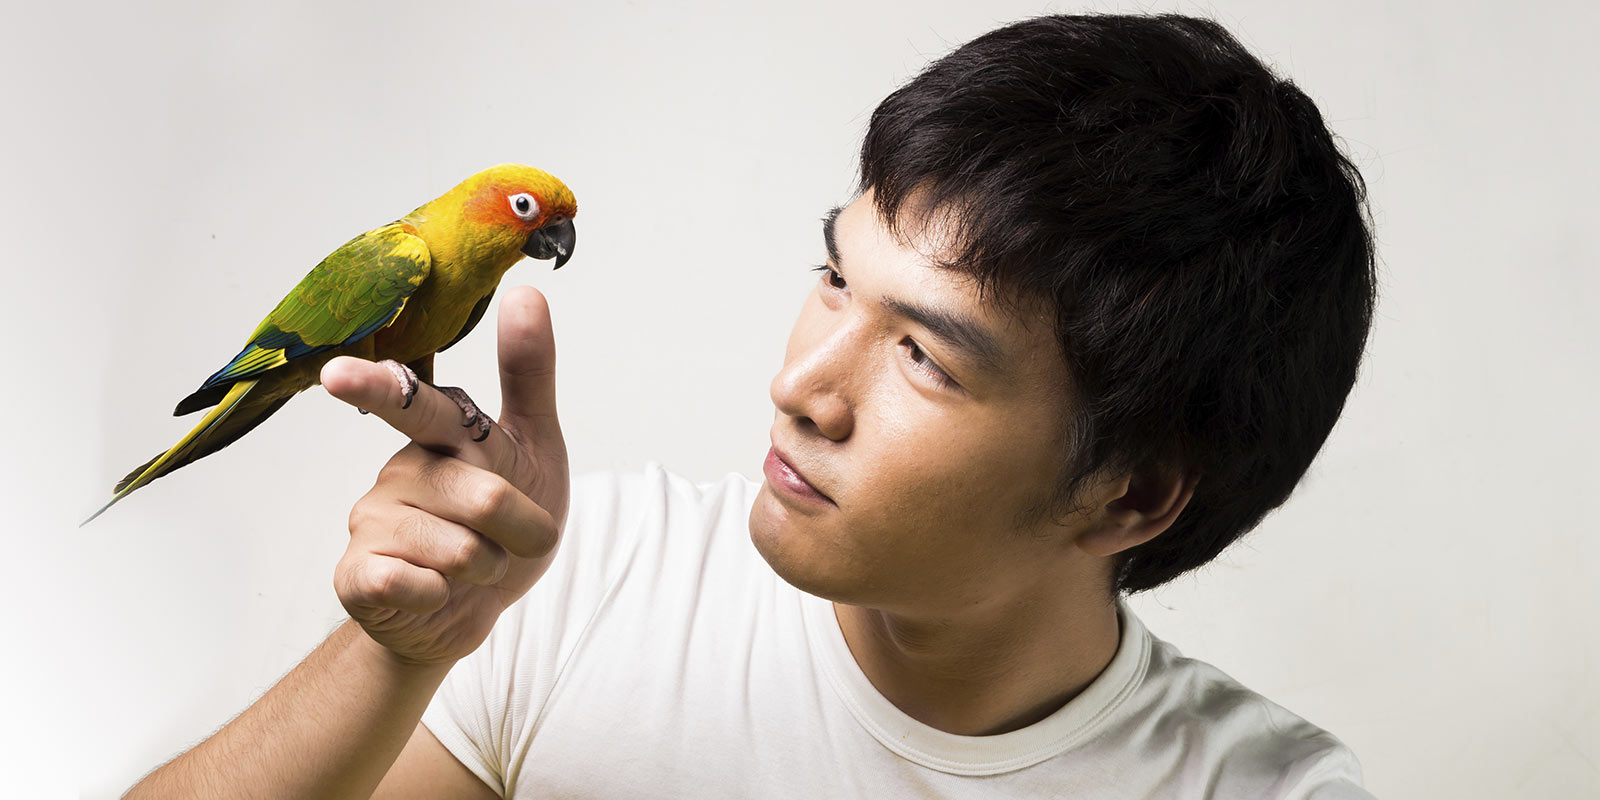 Man holding pet parakeet.